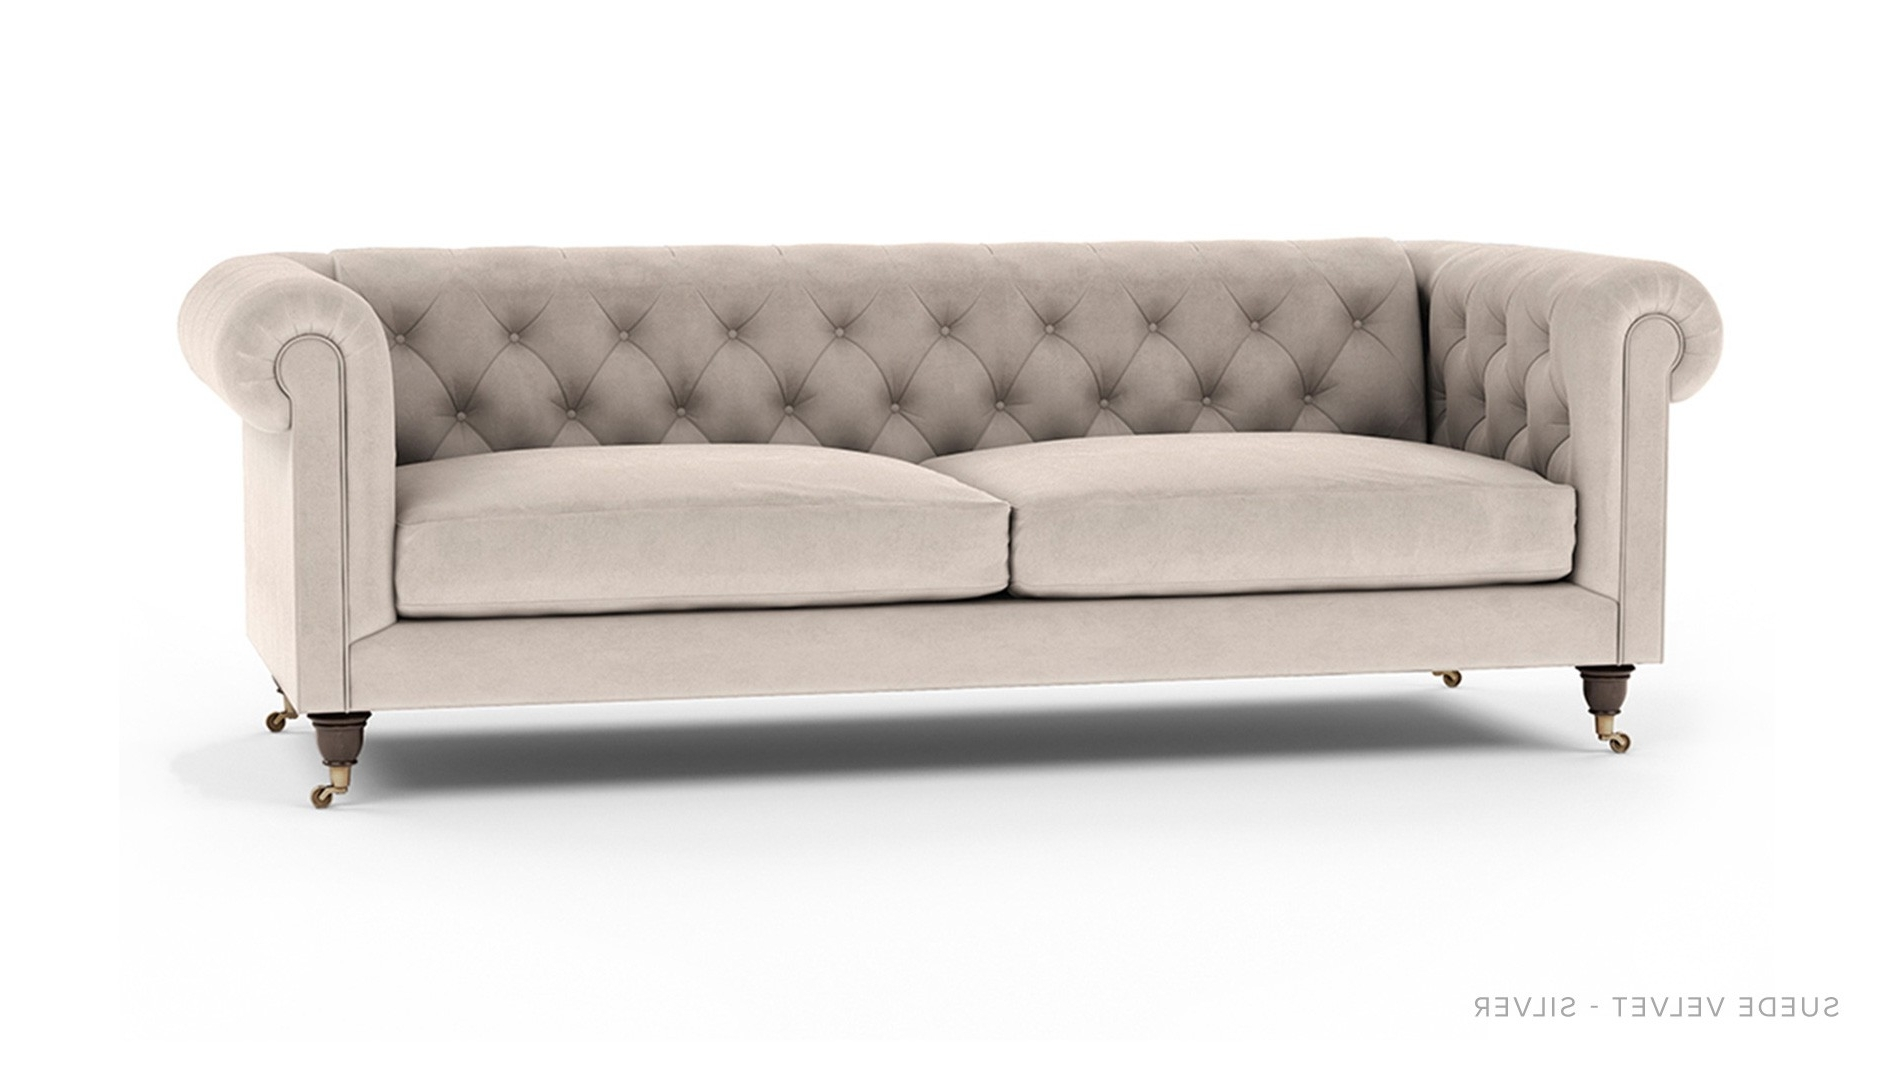 Sofa – Luxdeco Inside Famous Chesterfield Sofas (View 18 of 20)